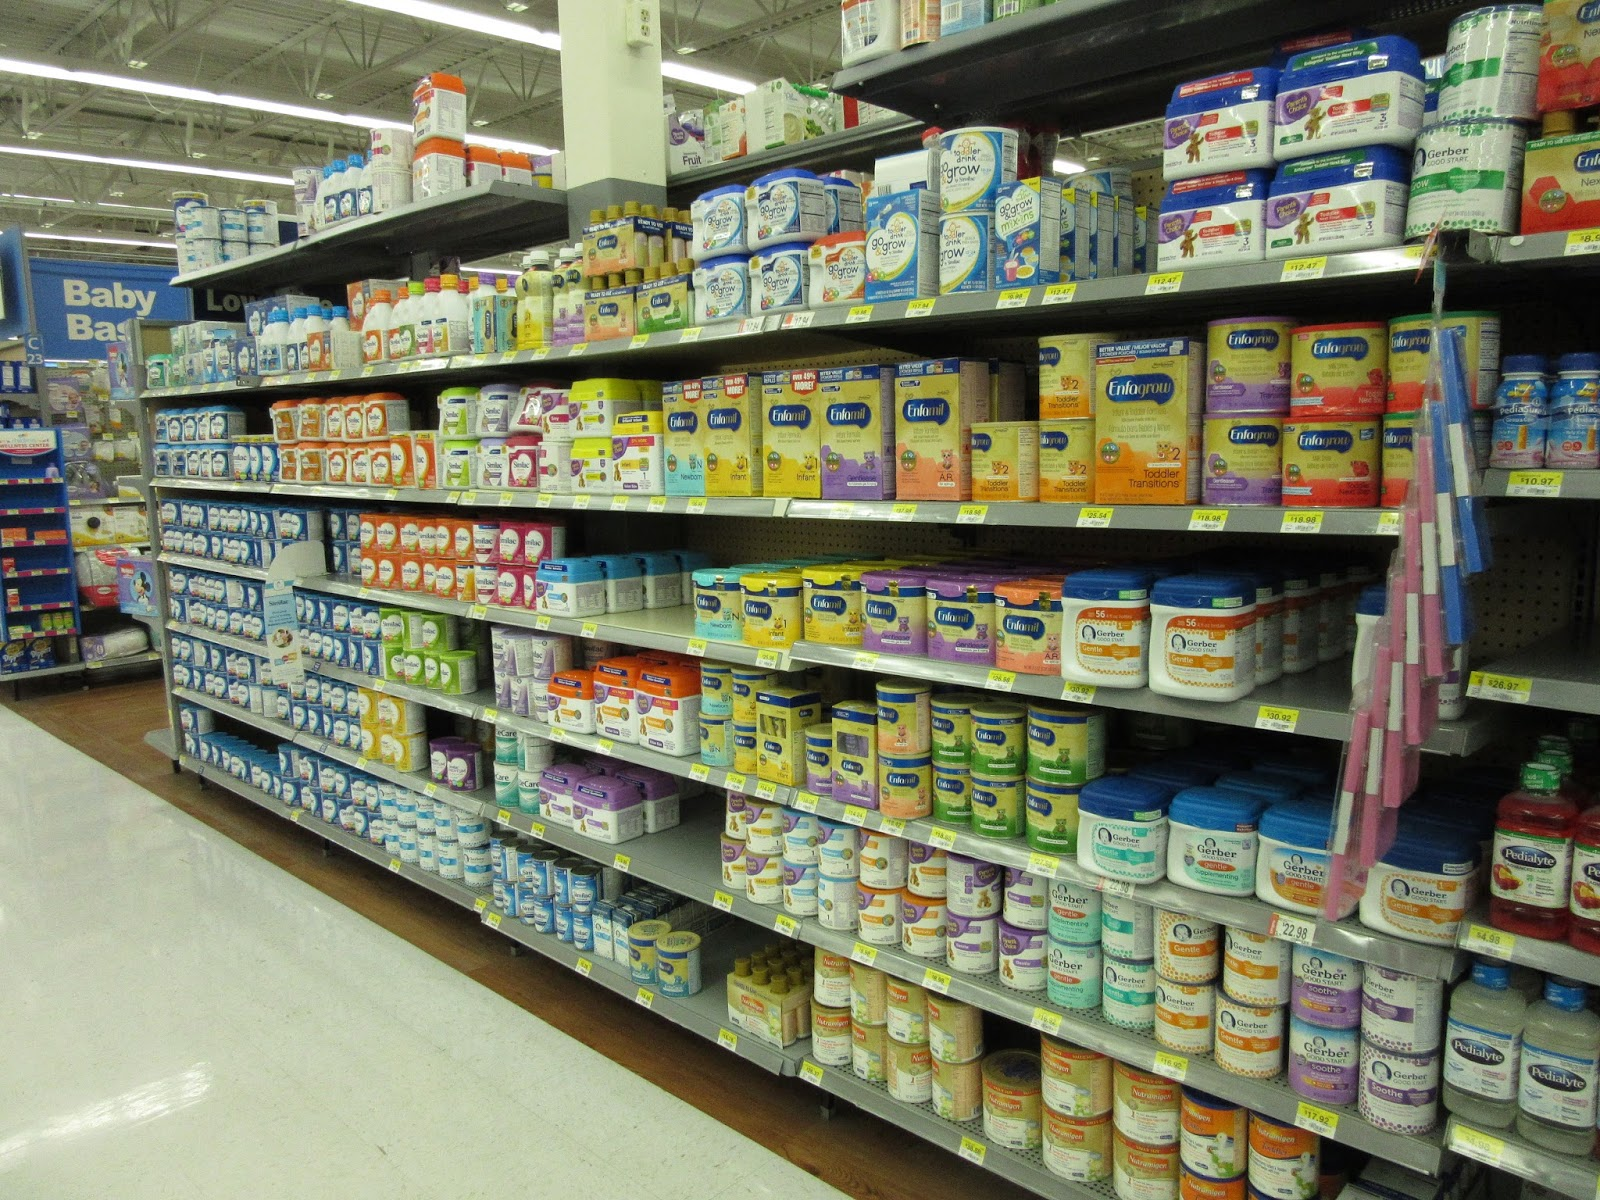 walmart culture Read this essay on walmart culture change come browse our large digital warehouse of free sample essays get the knowledge you need in order to.